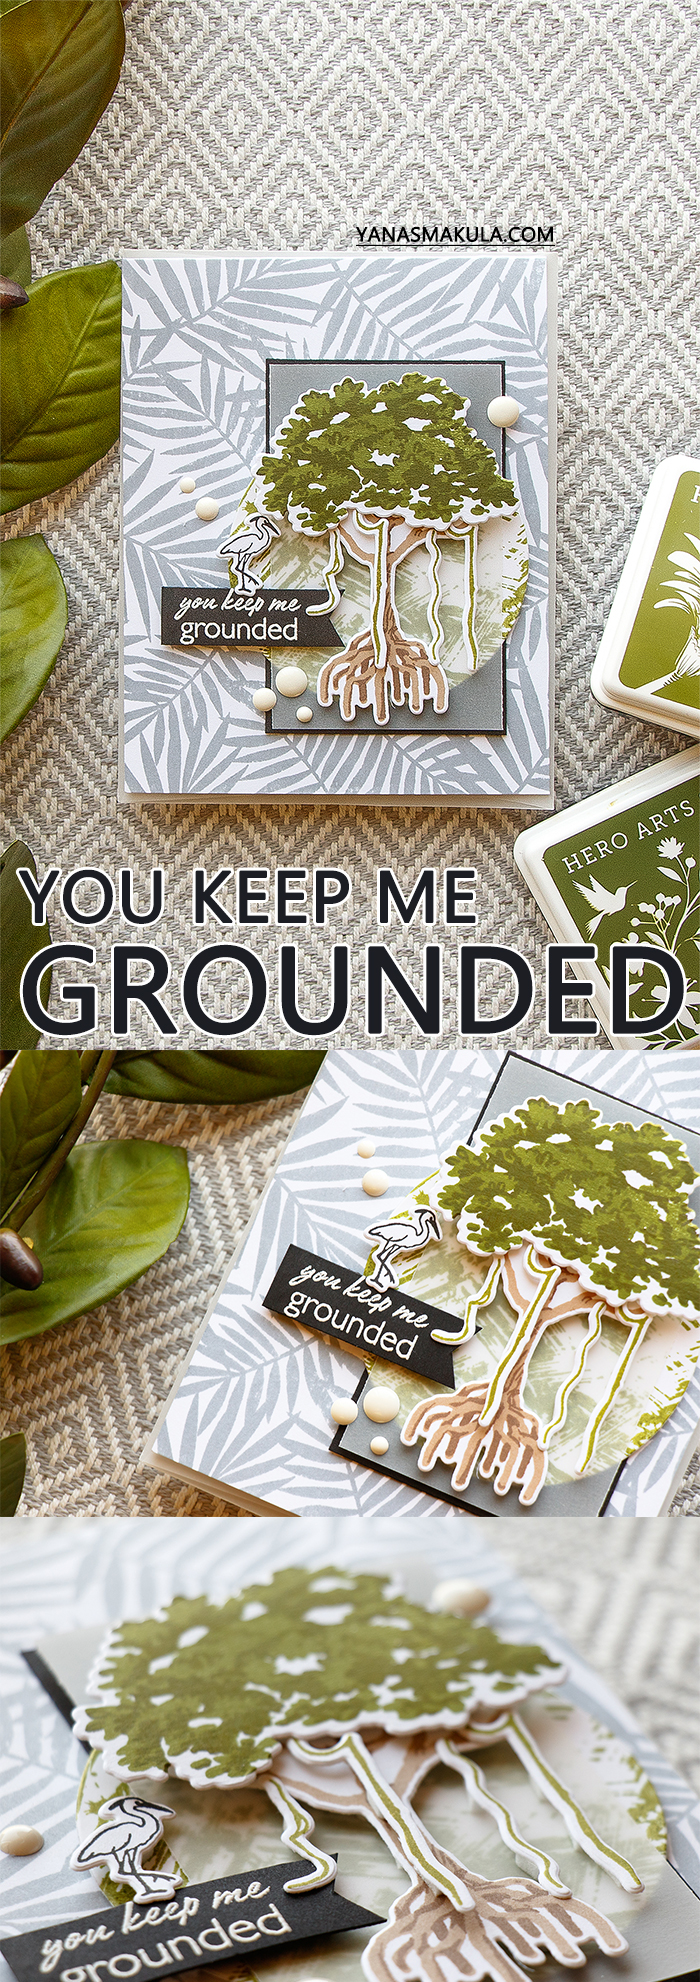 Hero Arts | You Keep Me Grounded card by Yana Smakula. Using Color Layering Mangrove stamp set